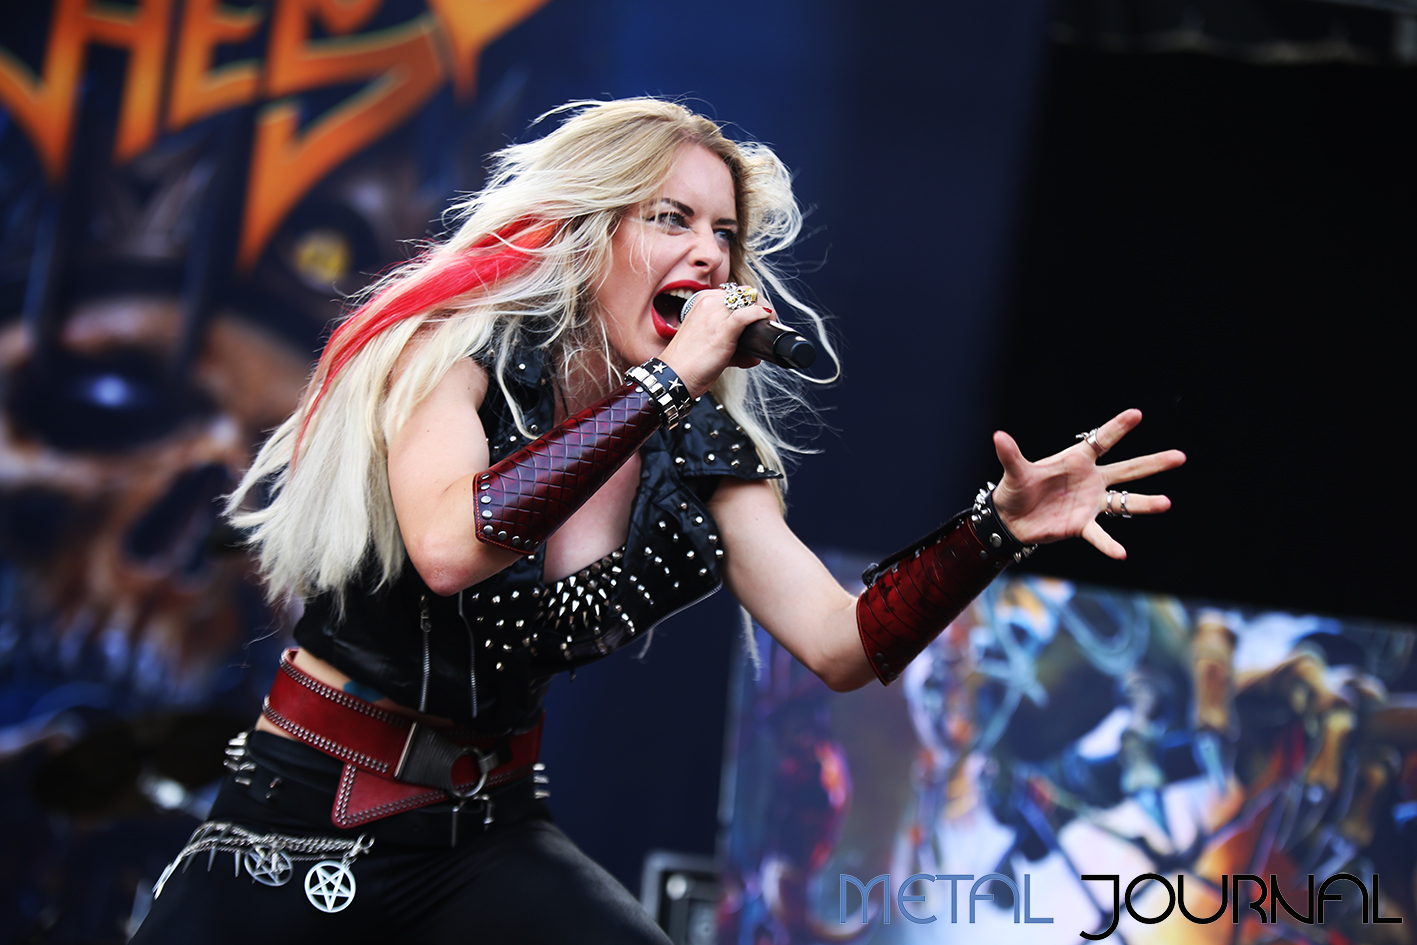 burning witches - leyendas del rock 2019 metal journal pic 1